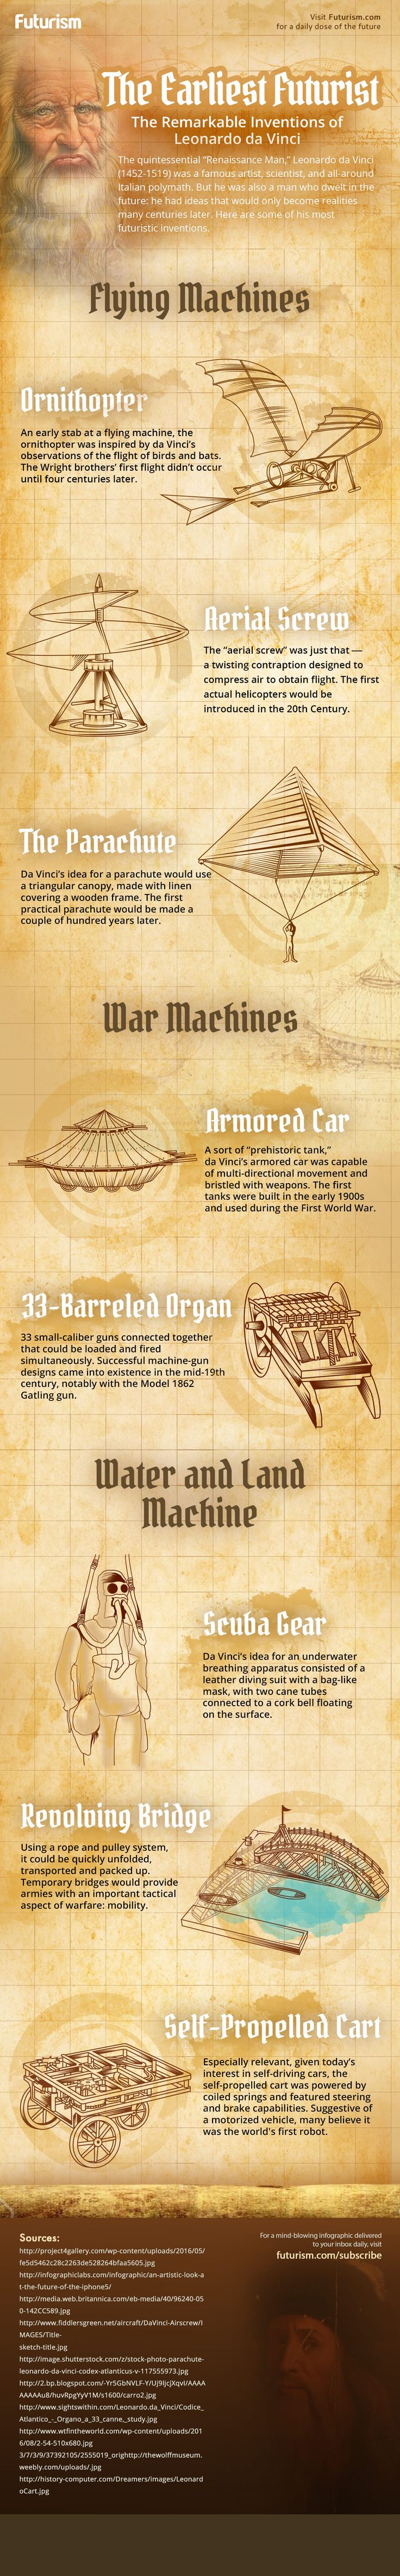 Aircraft, machine guns, diving suits and autonomous carts. Meet the futuristic inventions of Leonardo da Vinci. http://futurism.com/images/the-earliest-futurist-the-remarkable-inventions-of-leonardo-da-vinci-infographic/?utm_campaign=coschedule&utm_source=pinterest&utm_medium=Futurism&utm_content=The%20Earliest%20Futurist%3A%20The%20Remarkable%20Inventions%20of%20Leonardo%20da%20Vinci%20%5BINFOGRAPHIC%5D